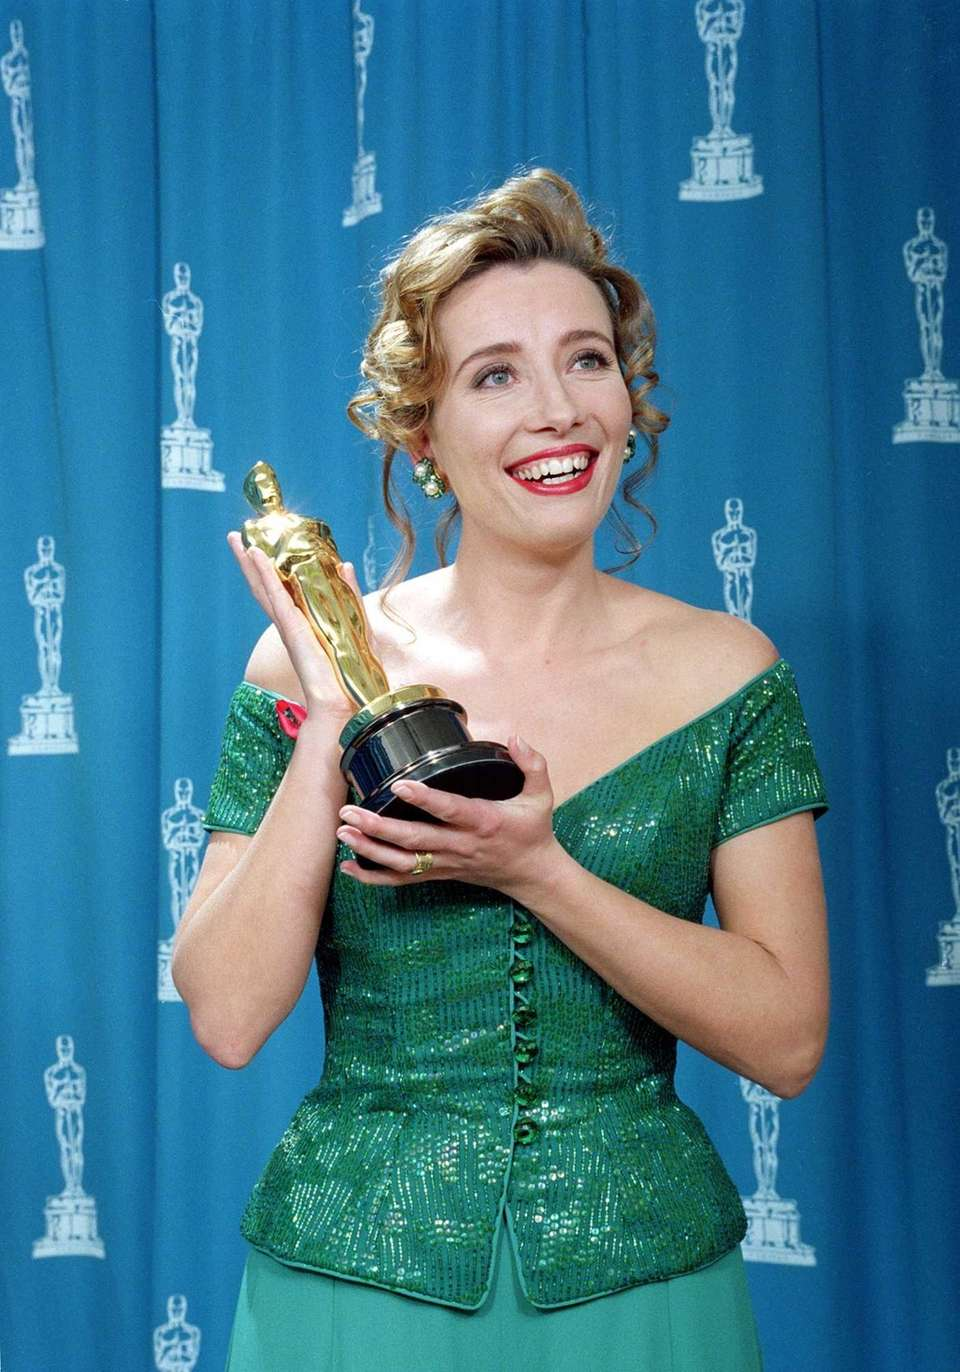 Actor Emma Thompson, posing with the Oscar statuette